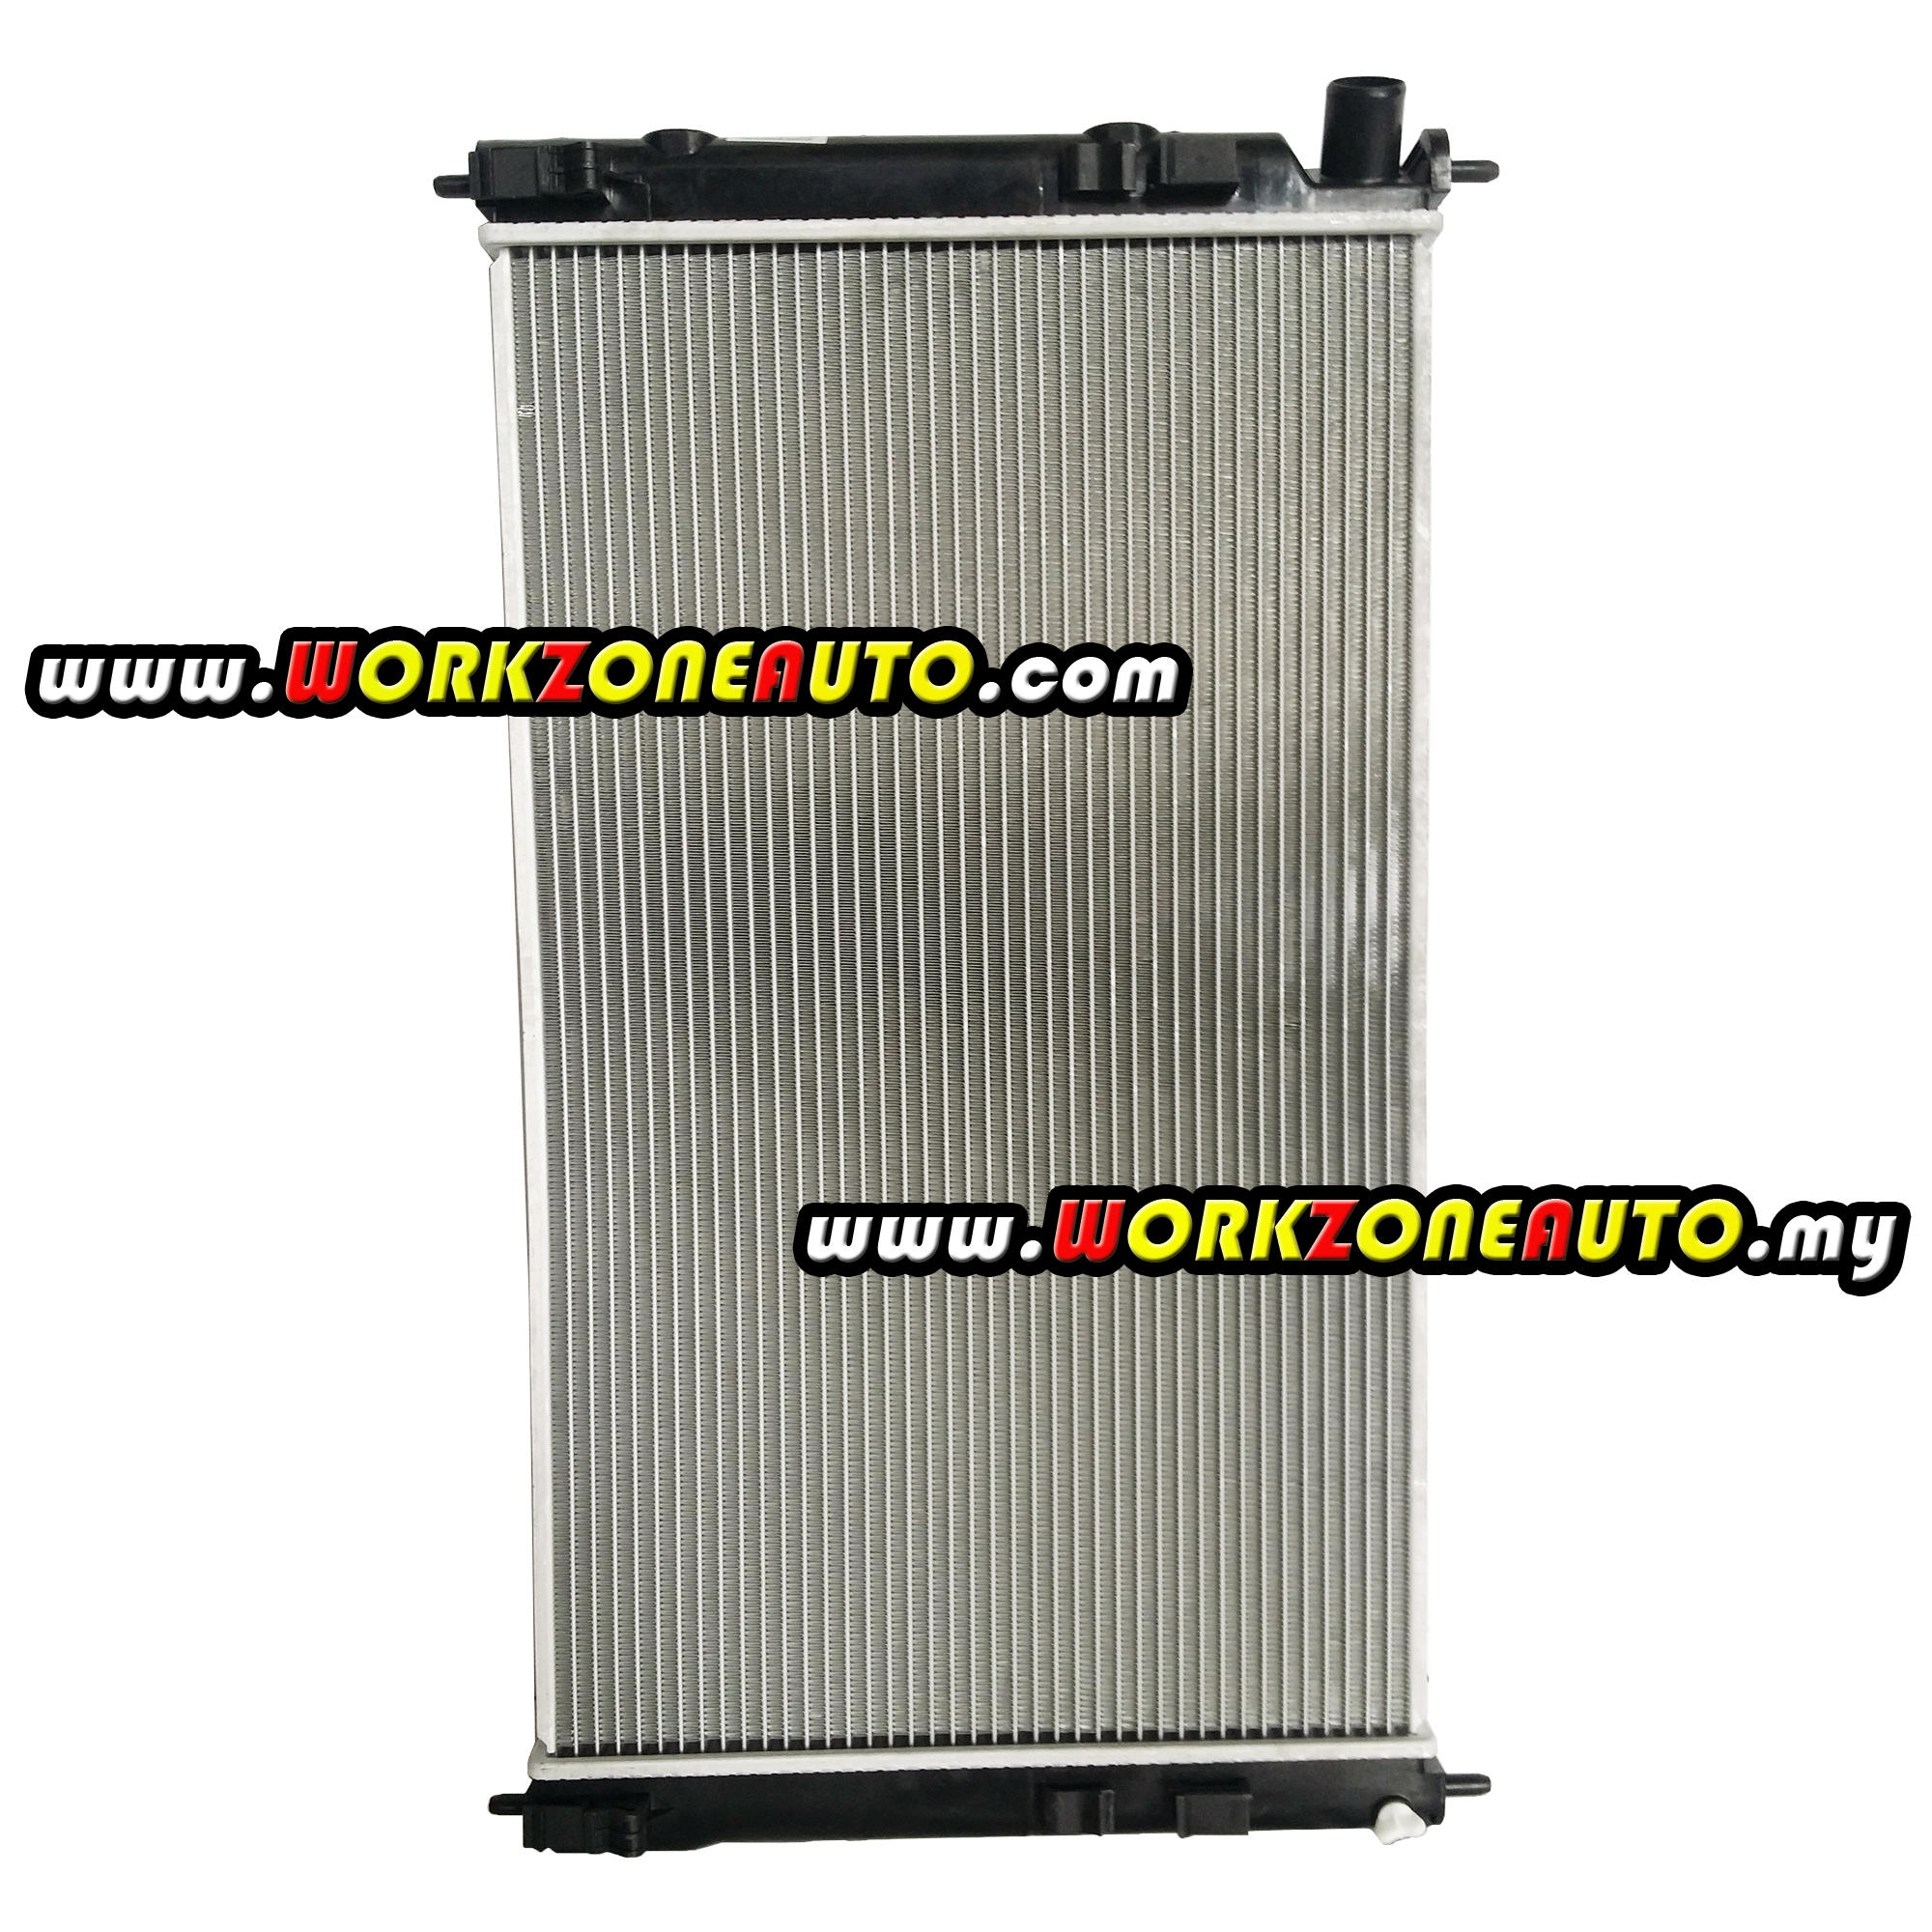 Mitsubishi Lancer 2007 Proton Inspira 2010 Manual 26mm Radiator TLX